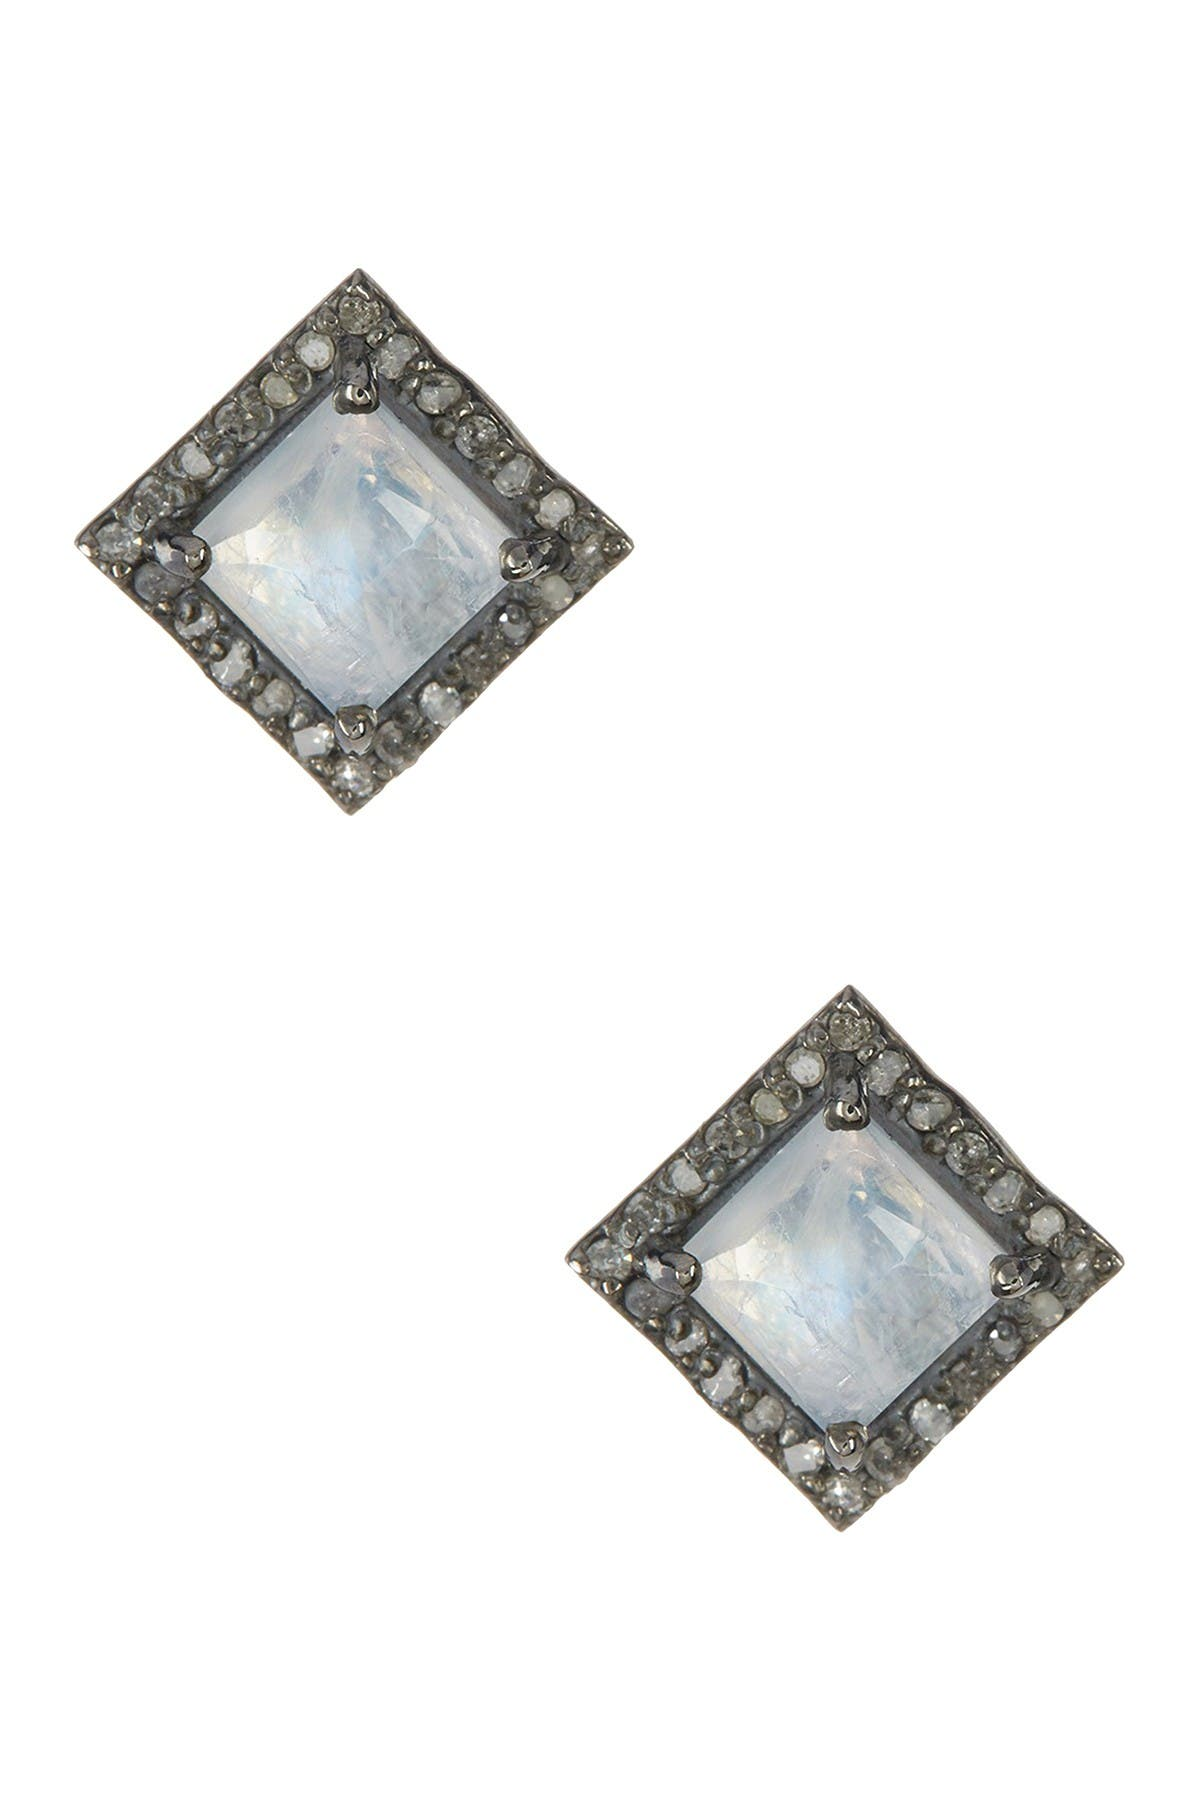 Image of ADORNIA Millicent Moonstone & Champagne Diamond Earrings - 0.30 ctw